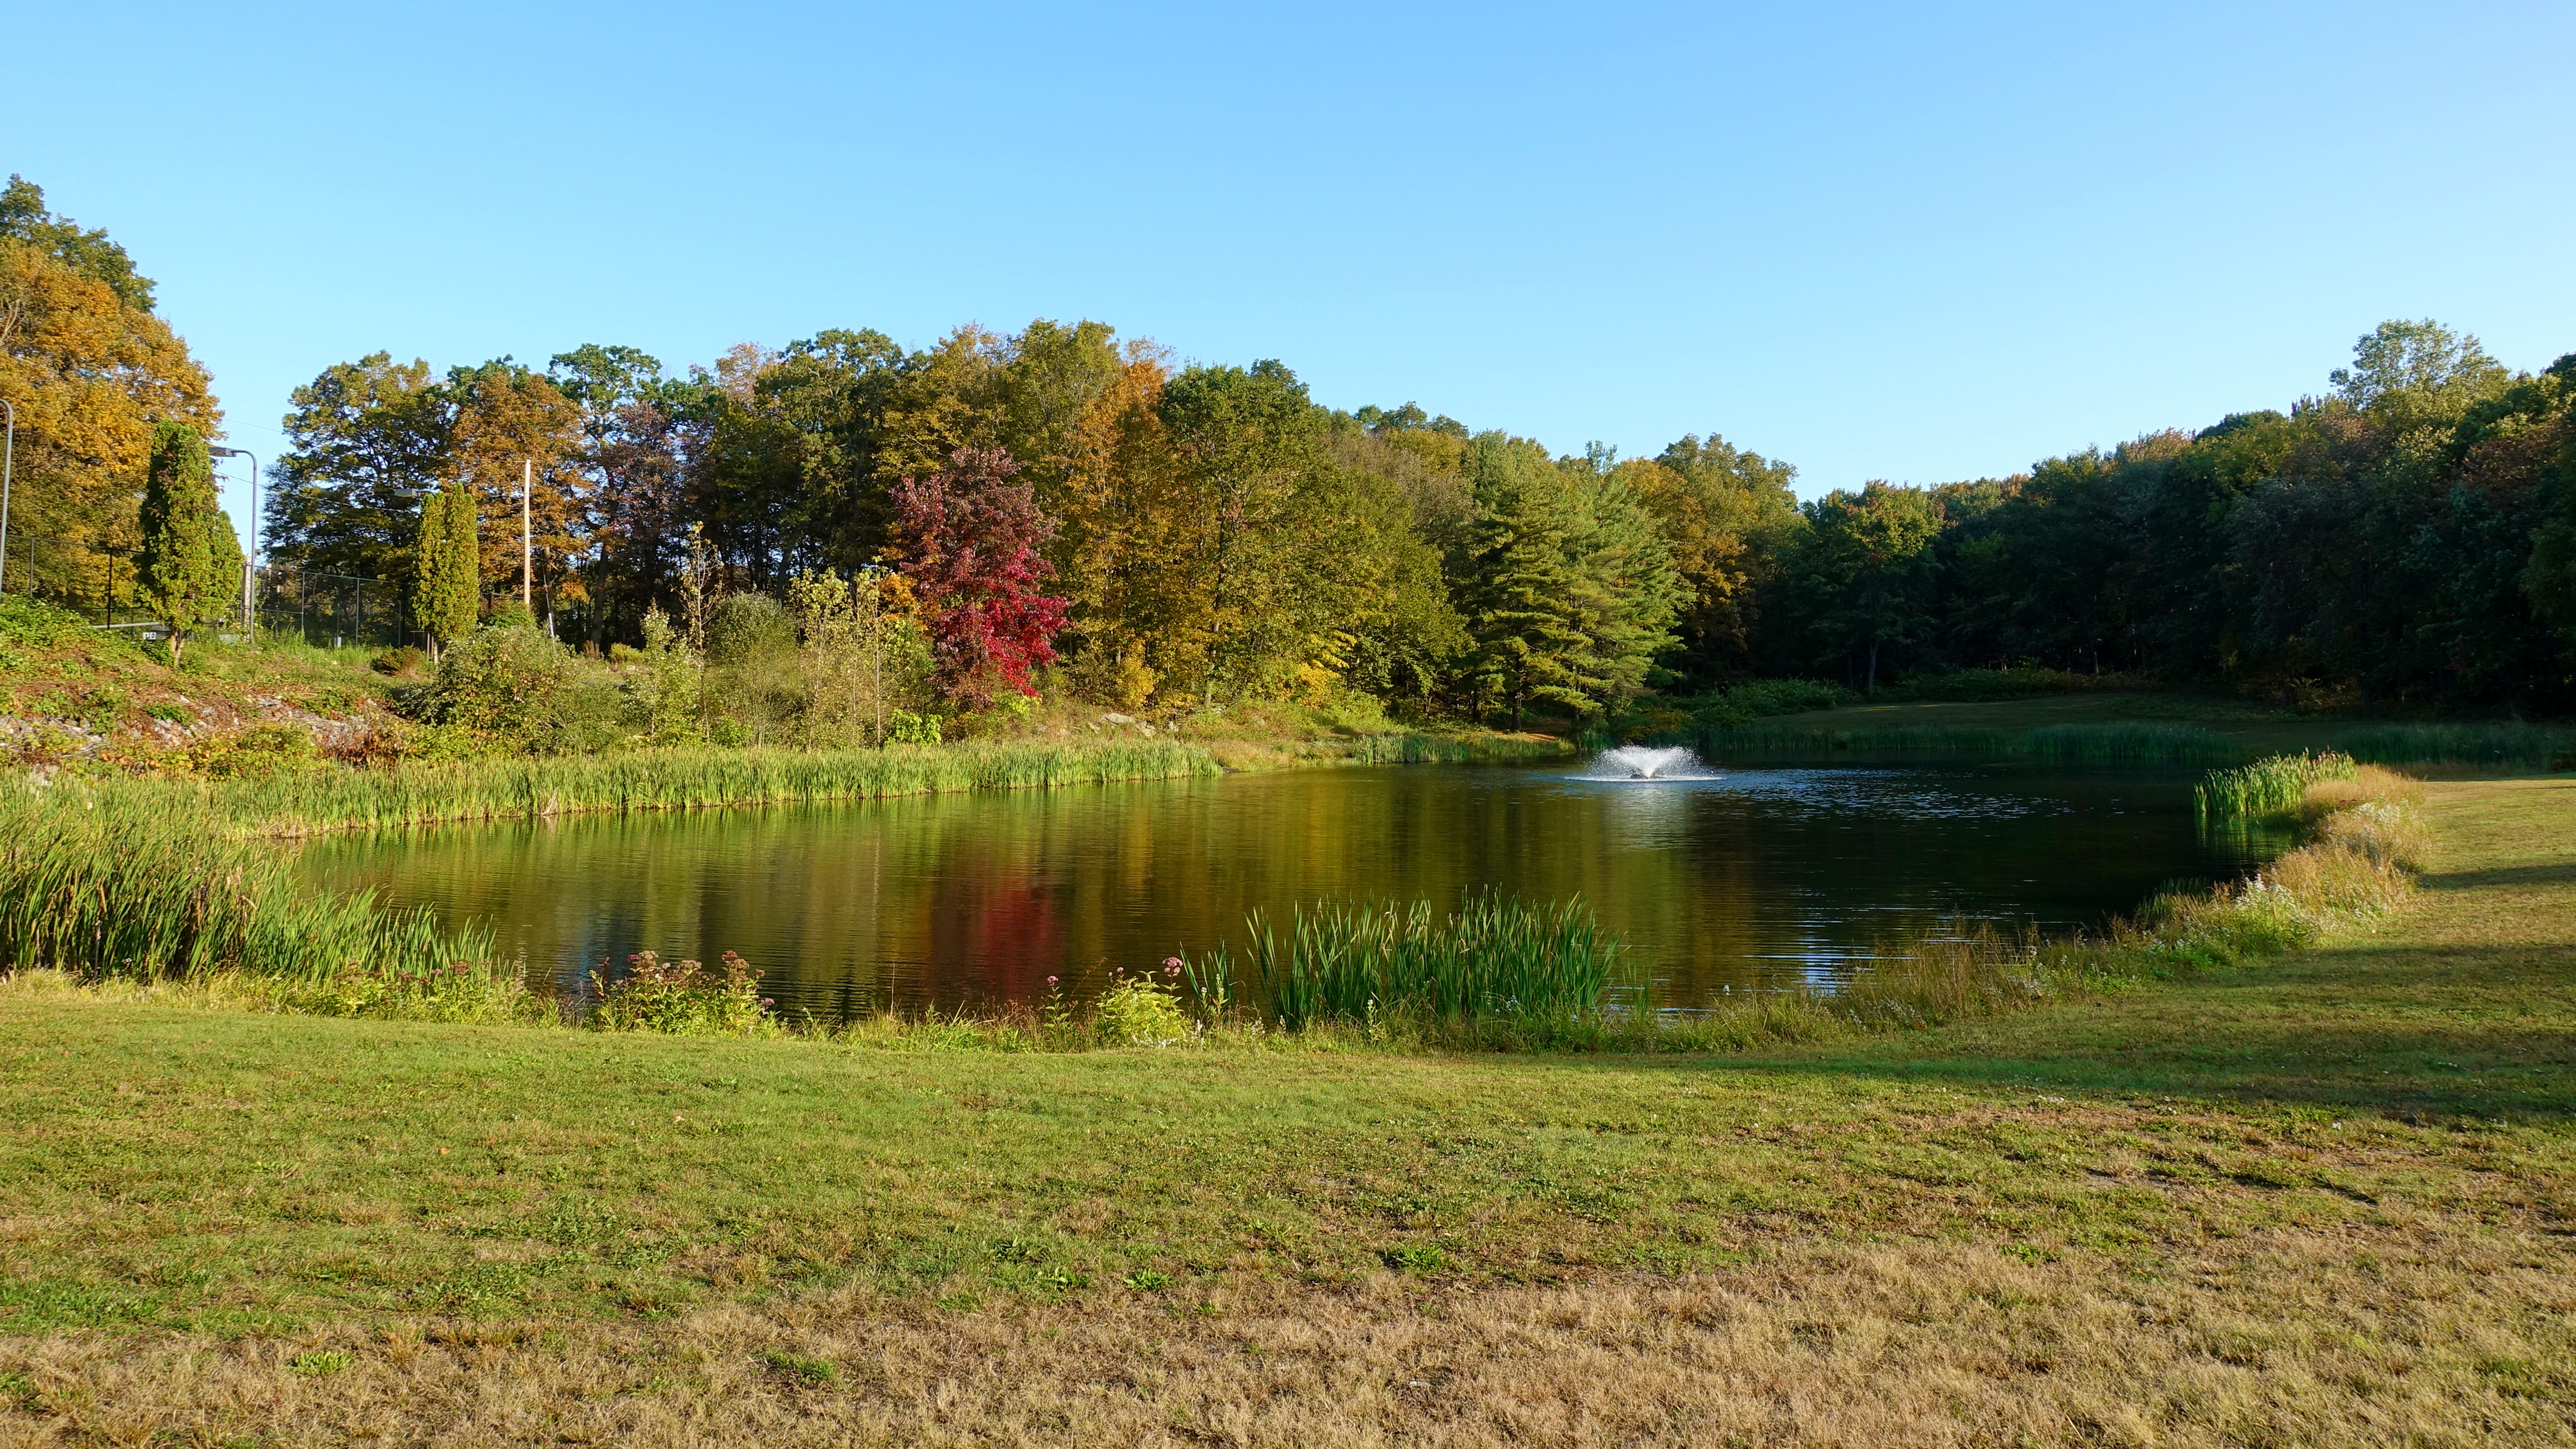 View of the pond at McGrath Park in Prospect, Connecticut